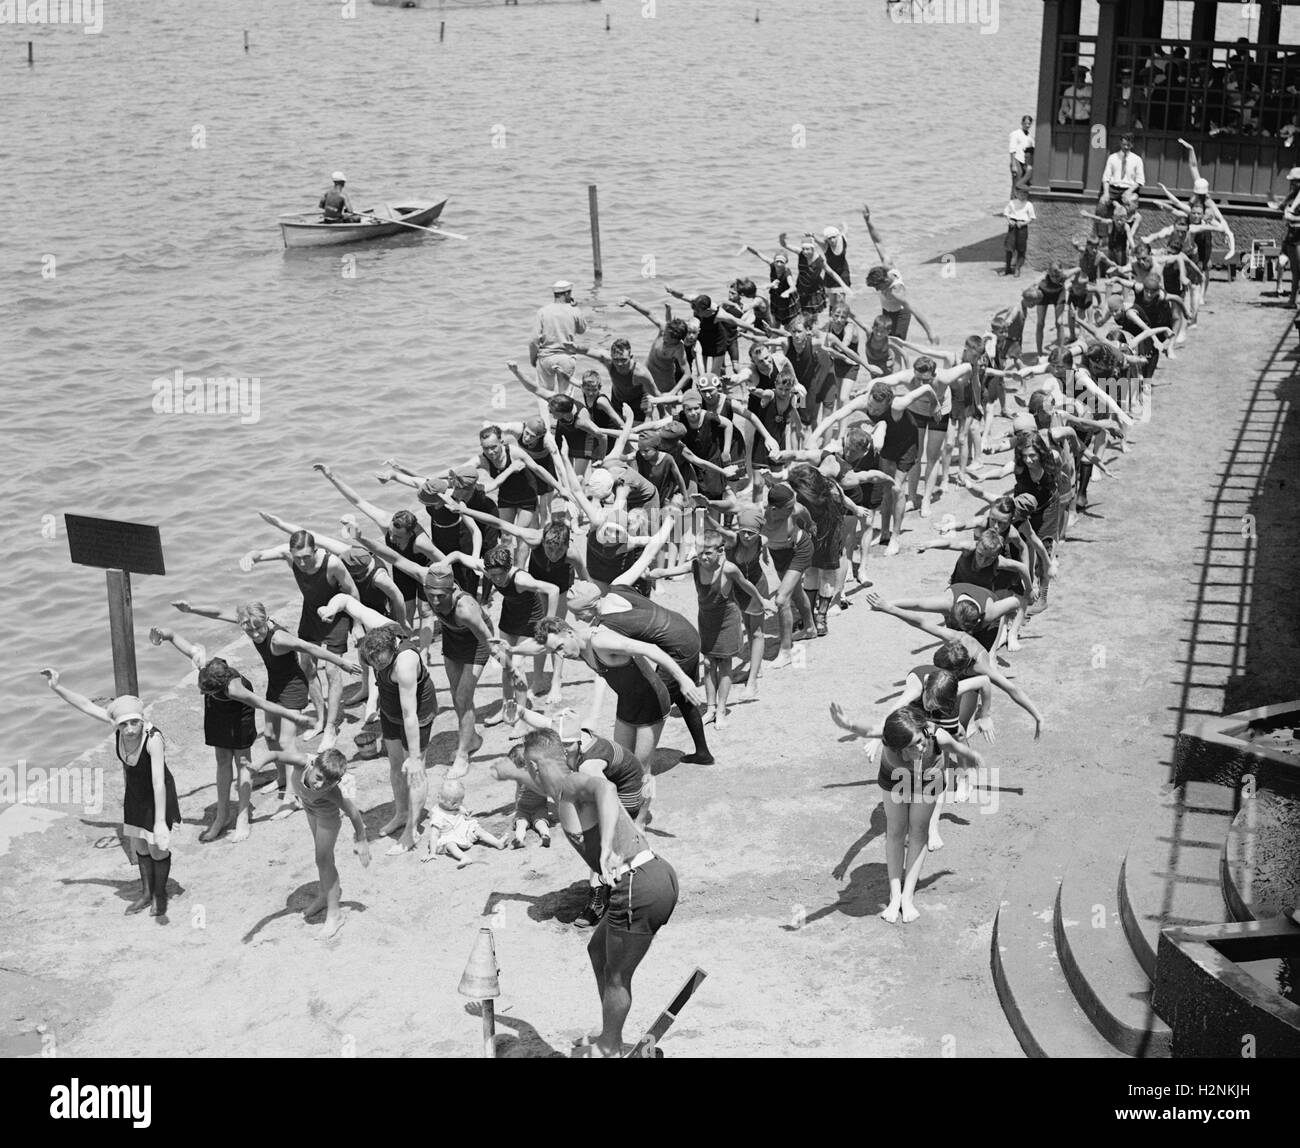 Swimming Lessons at Bathing Beach, Washington DC, USA, National Photo Company, July 1922 - Stock Image